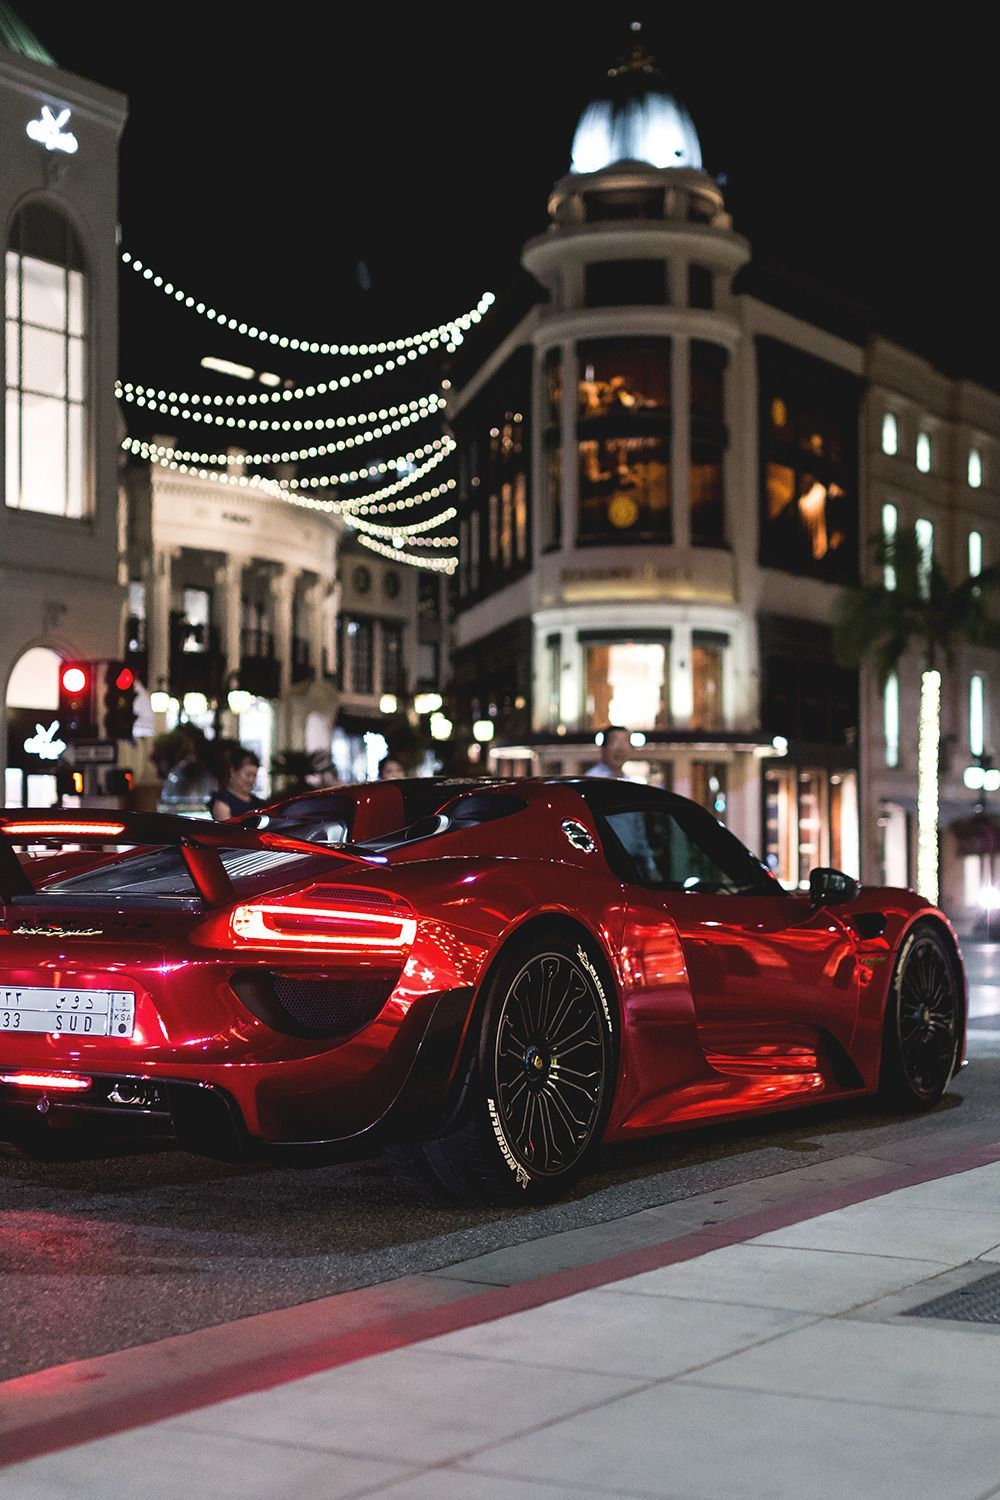 Pin By Xux Xox On Luxuℝy ℂaℝ In 2020 Sports Car Photos Porsche 918 Red Sports Car